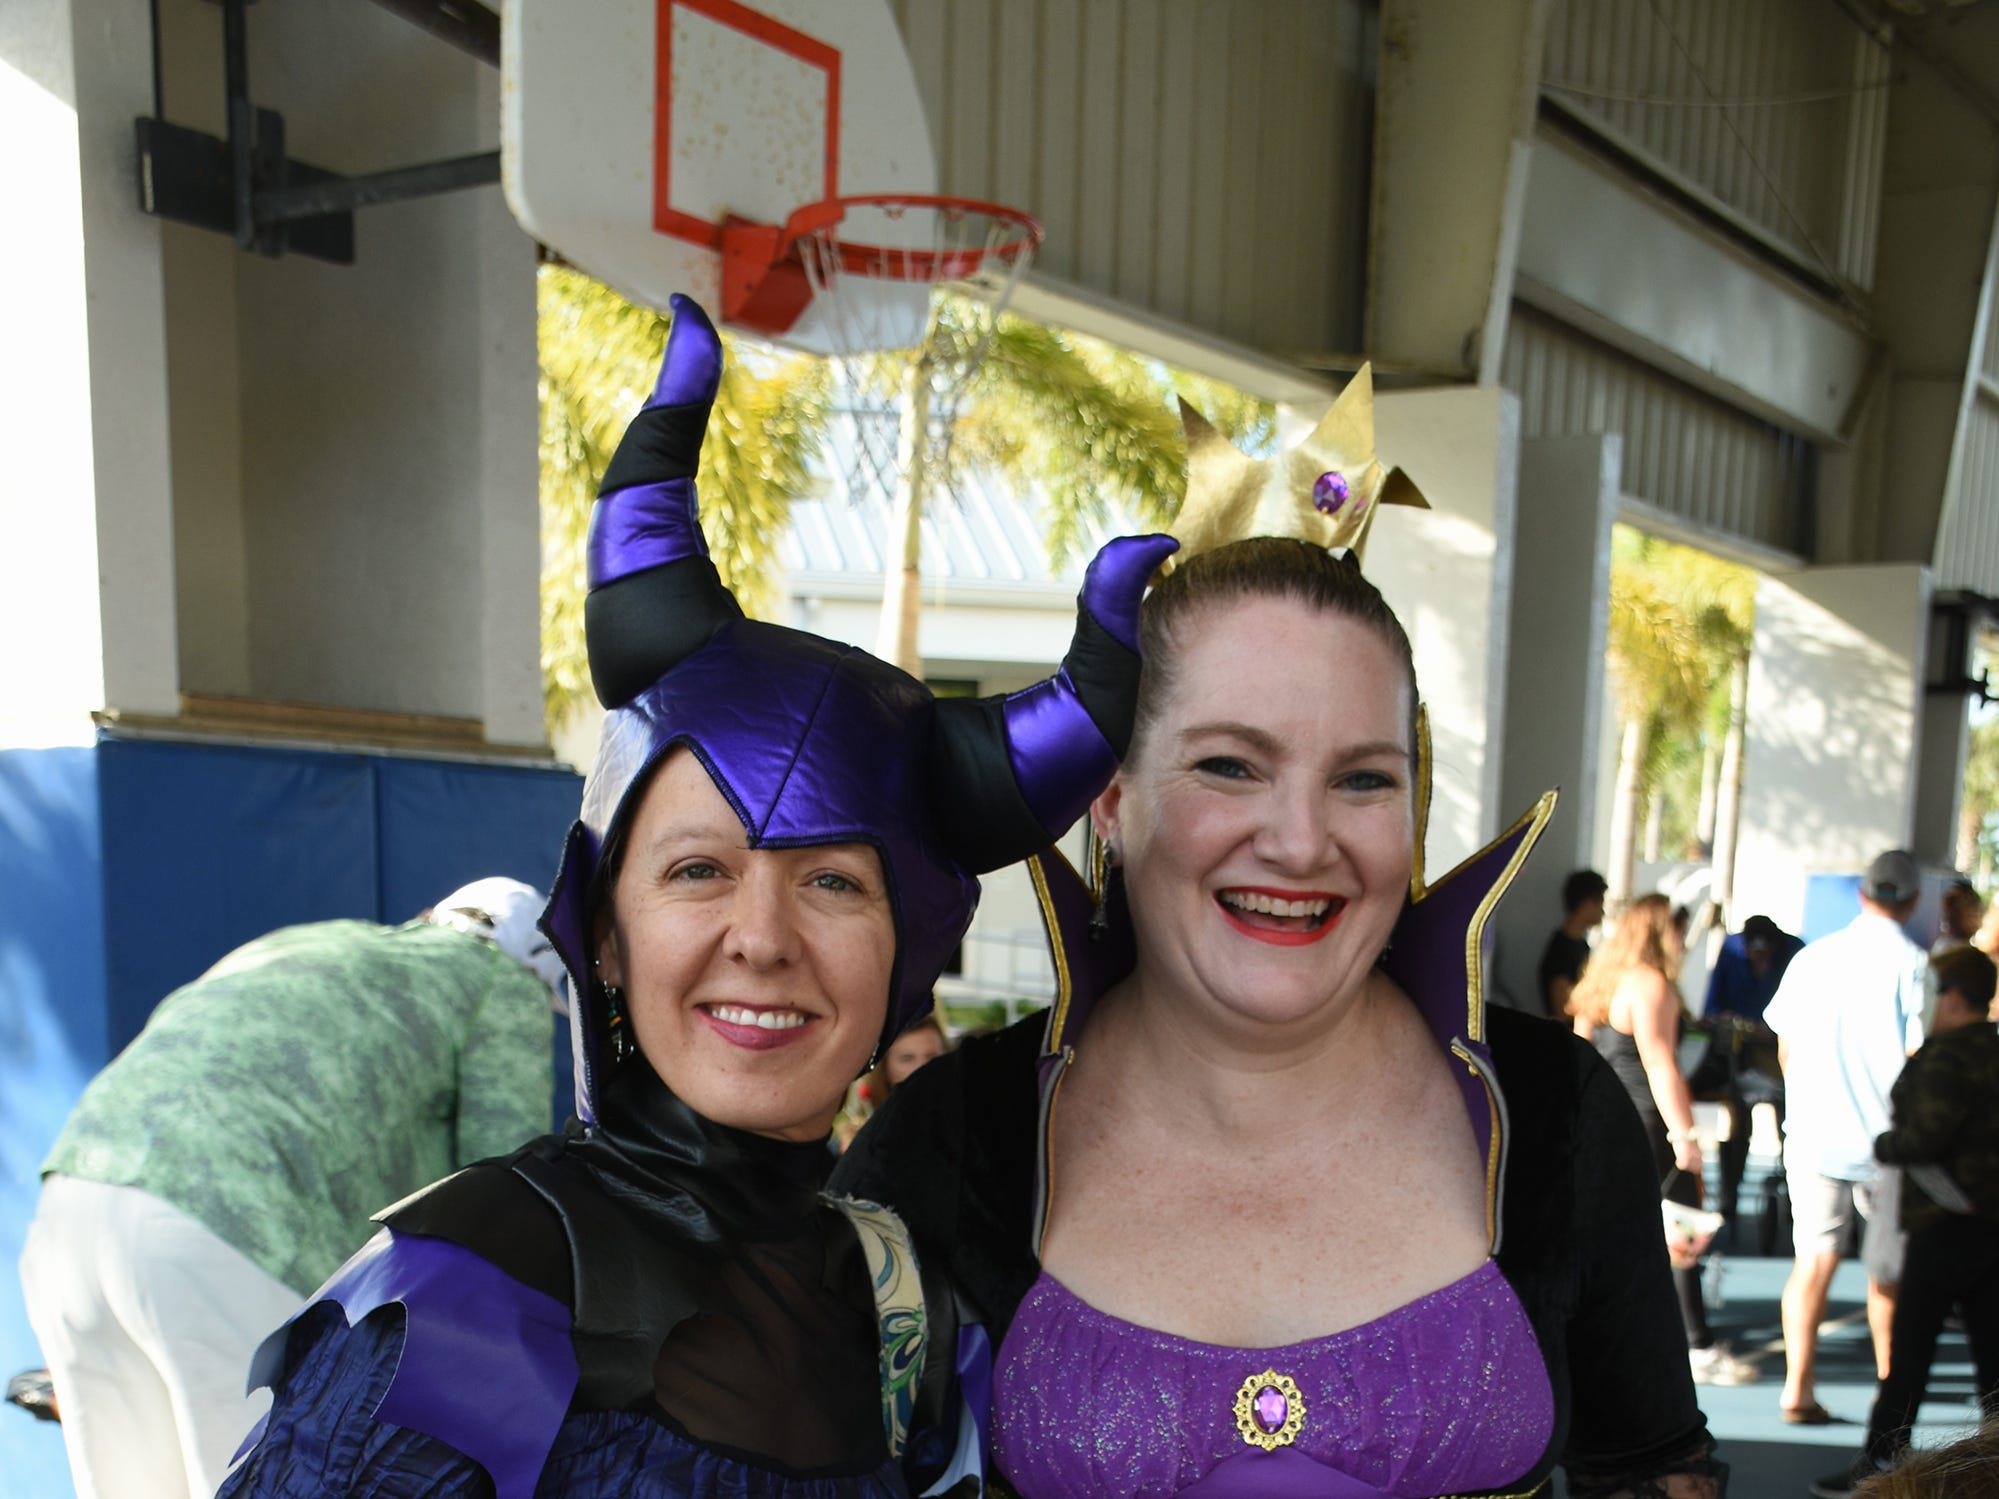 Suzi Szczepanski, left, and Jennifer Tenney didn't leave the dressup to the kids. The Spooktacular, the City of Marco Island's pre-Halloween celebration, returned to Mackle Park's air-nasium on Saturday afternoon, with costumes, games and family fun.